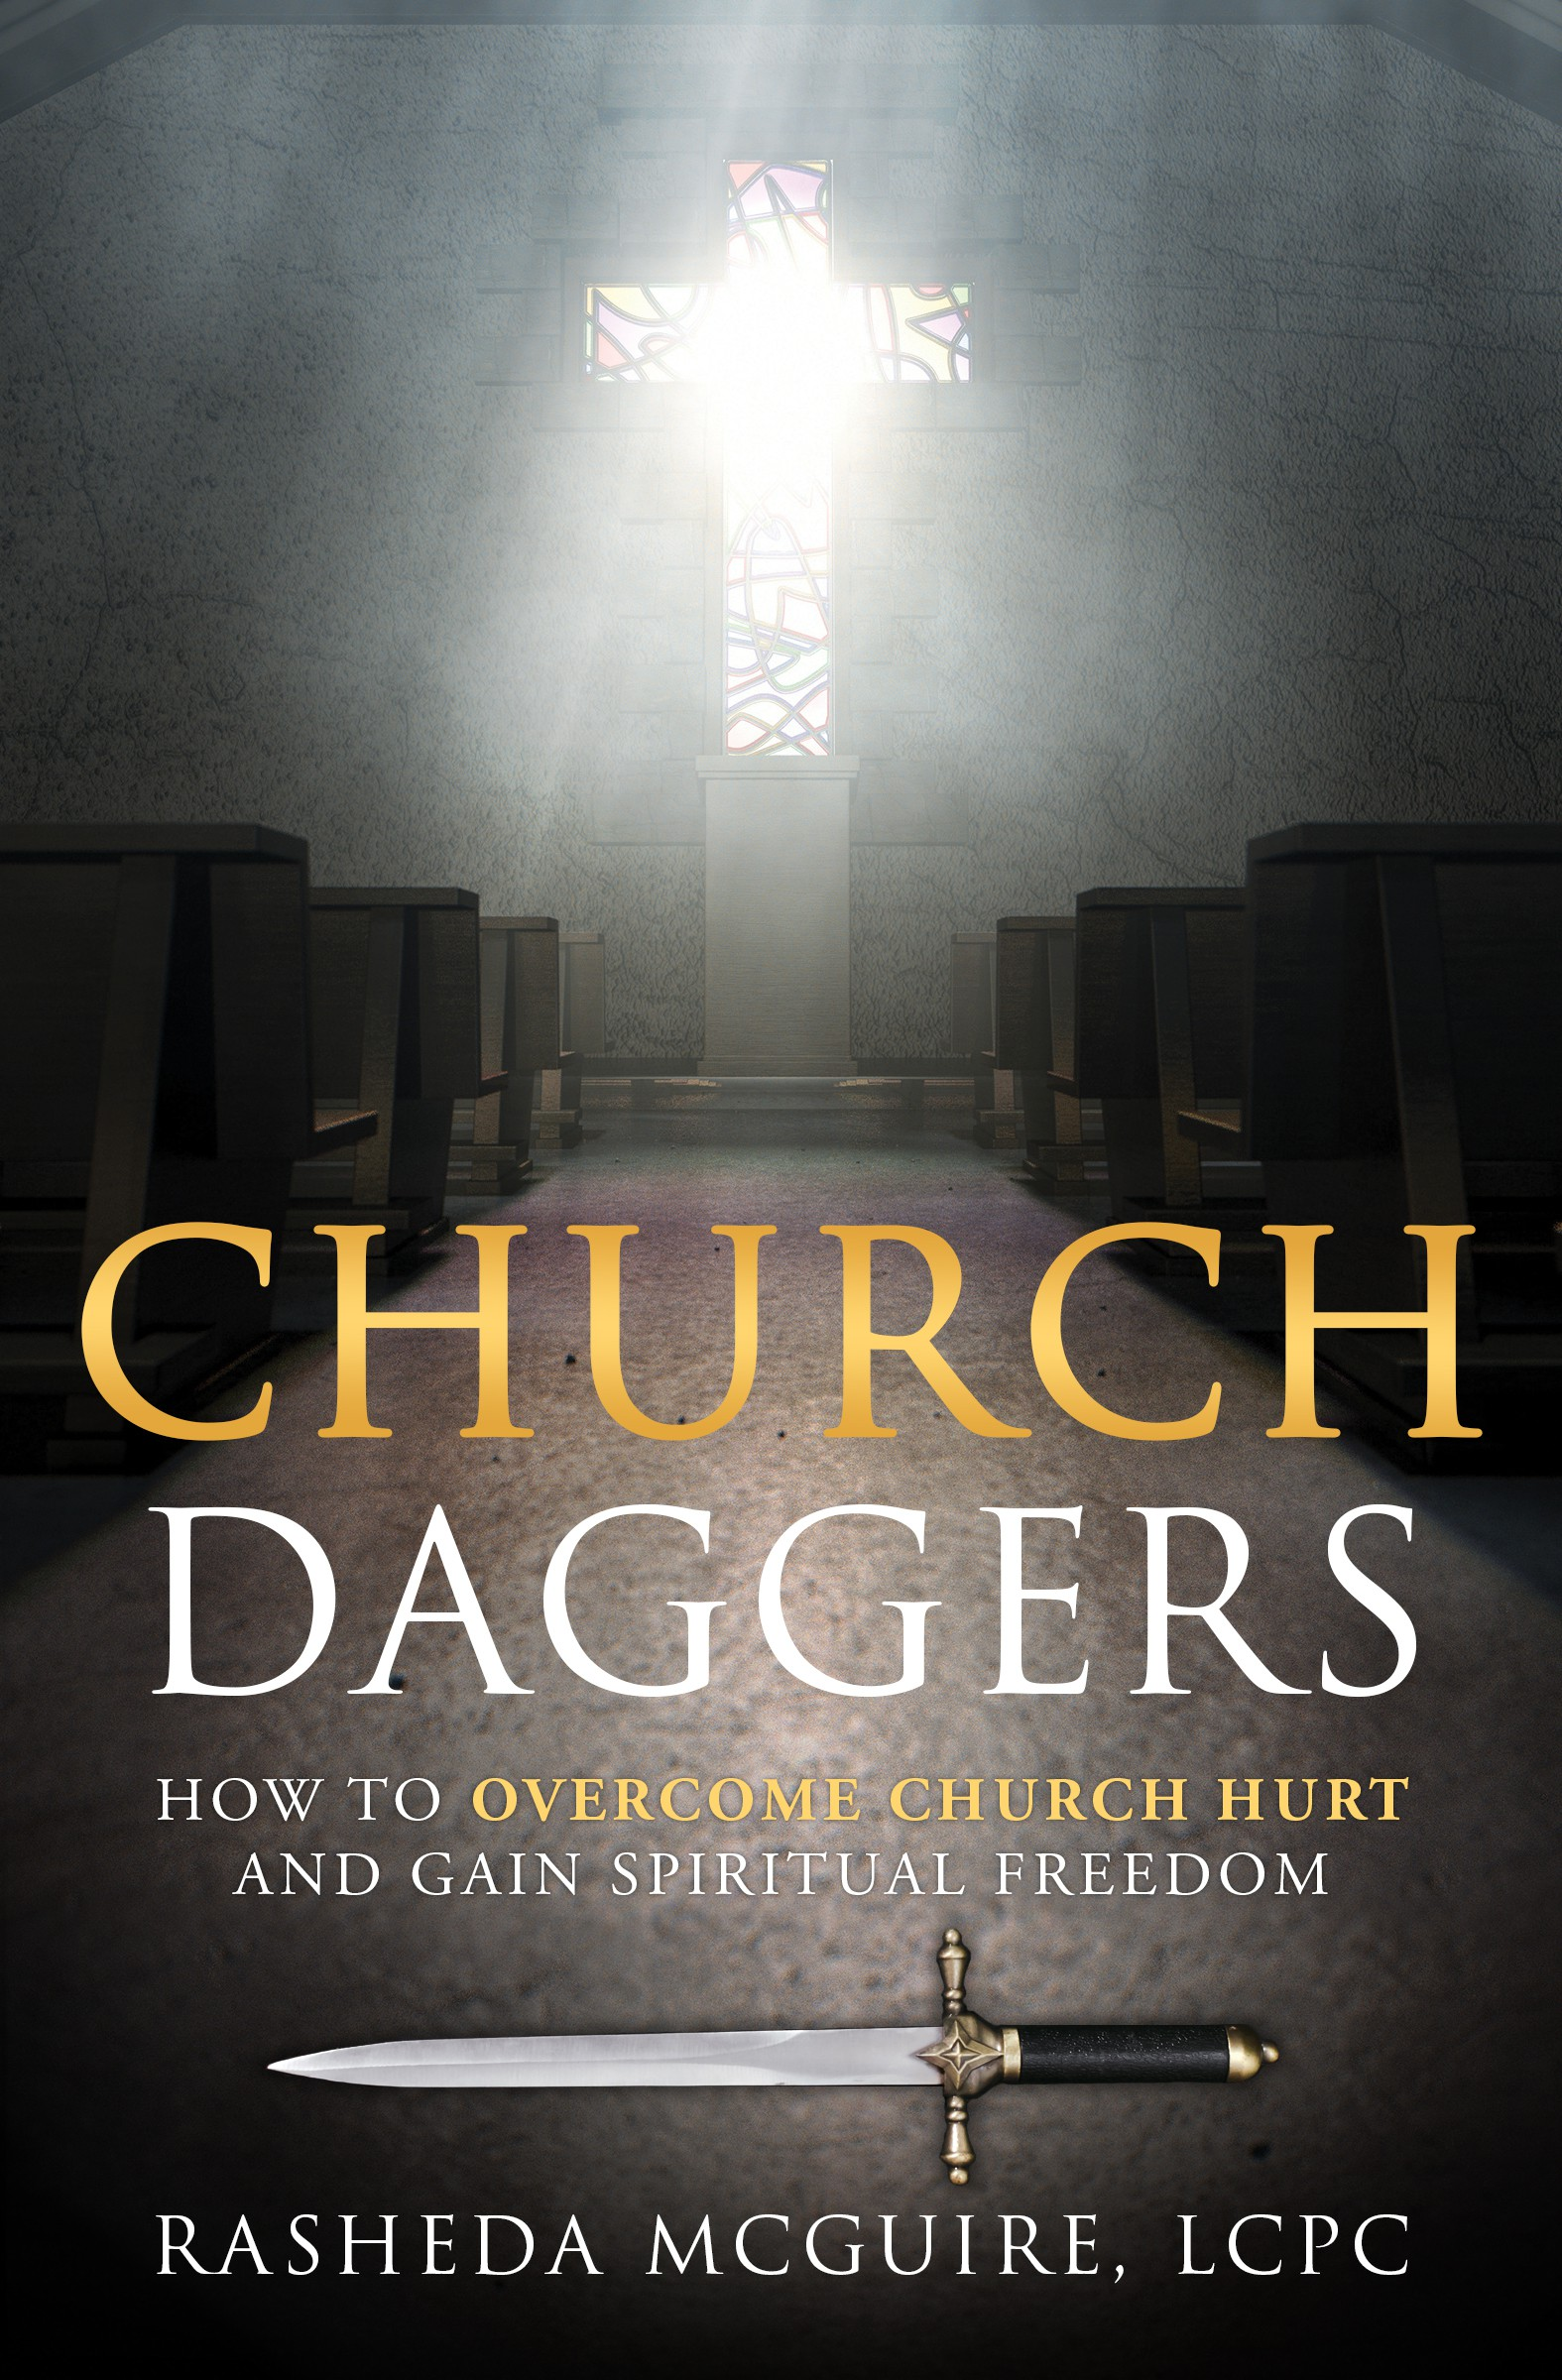 Church Daggers book needs a compelling cover